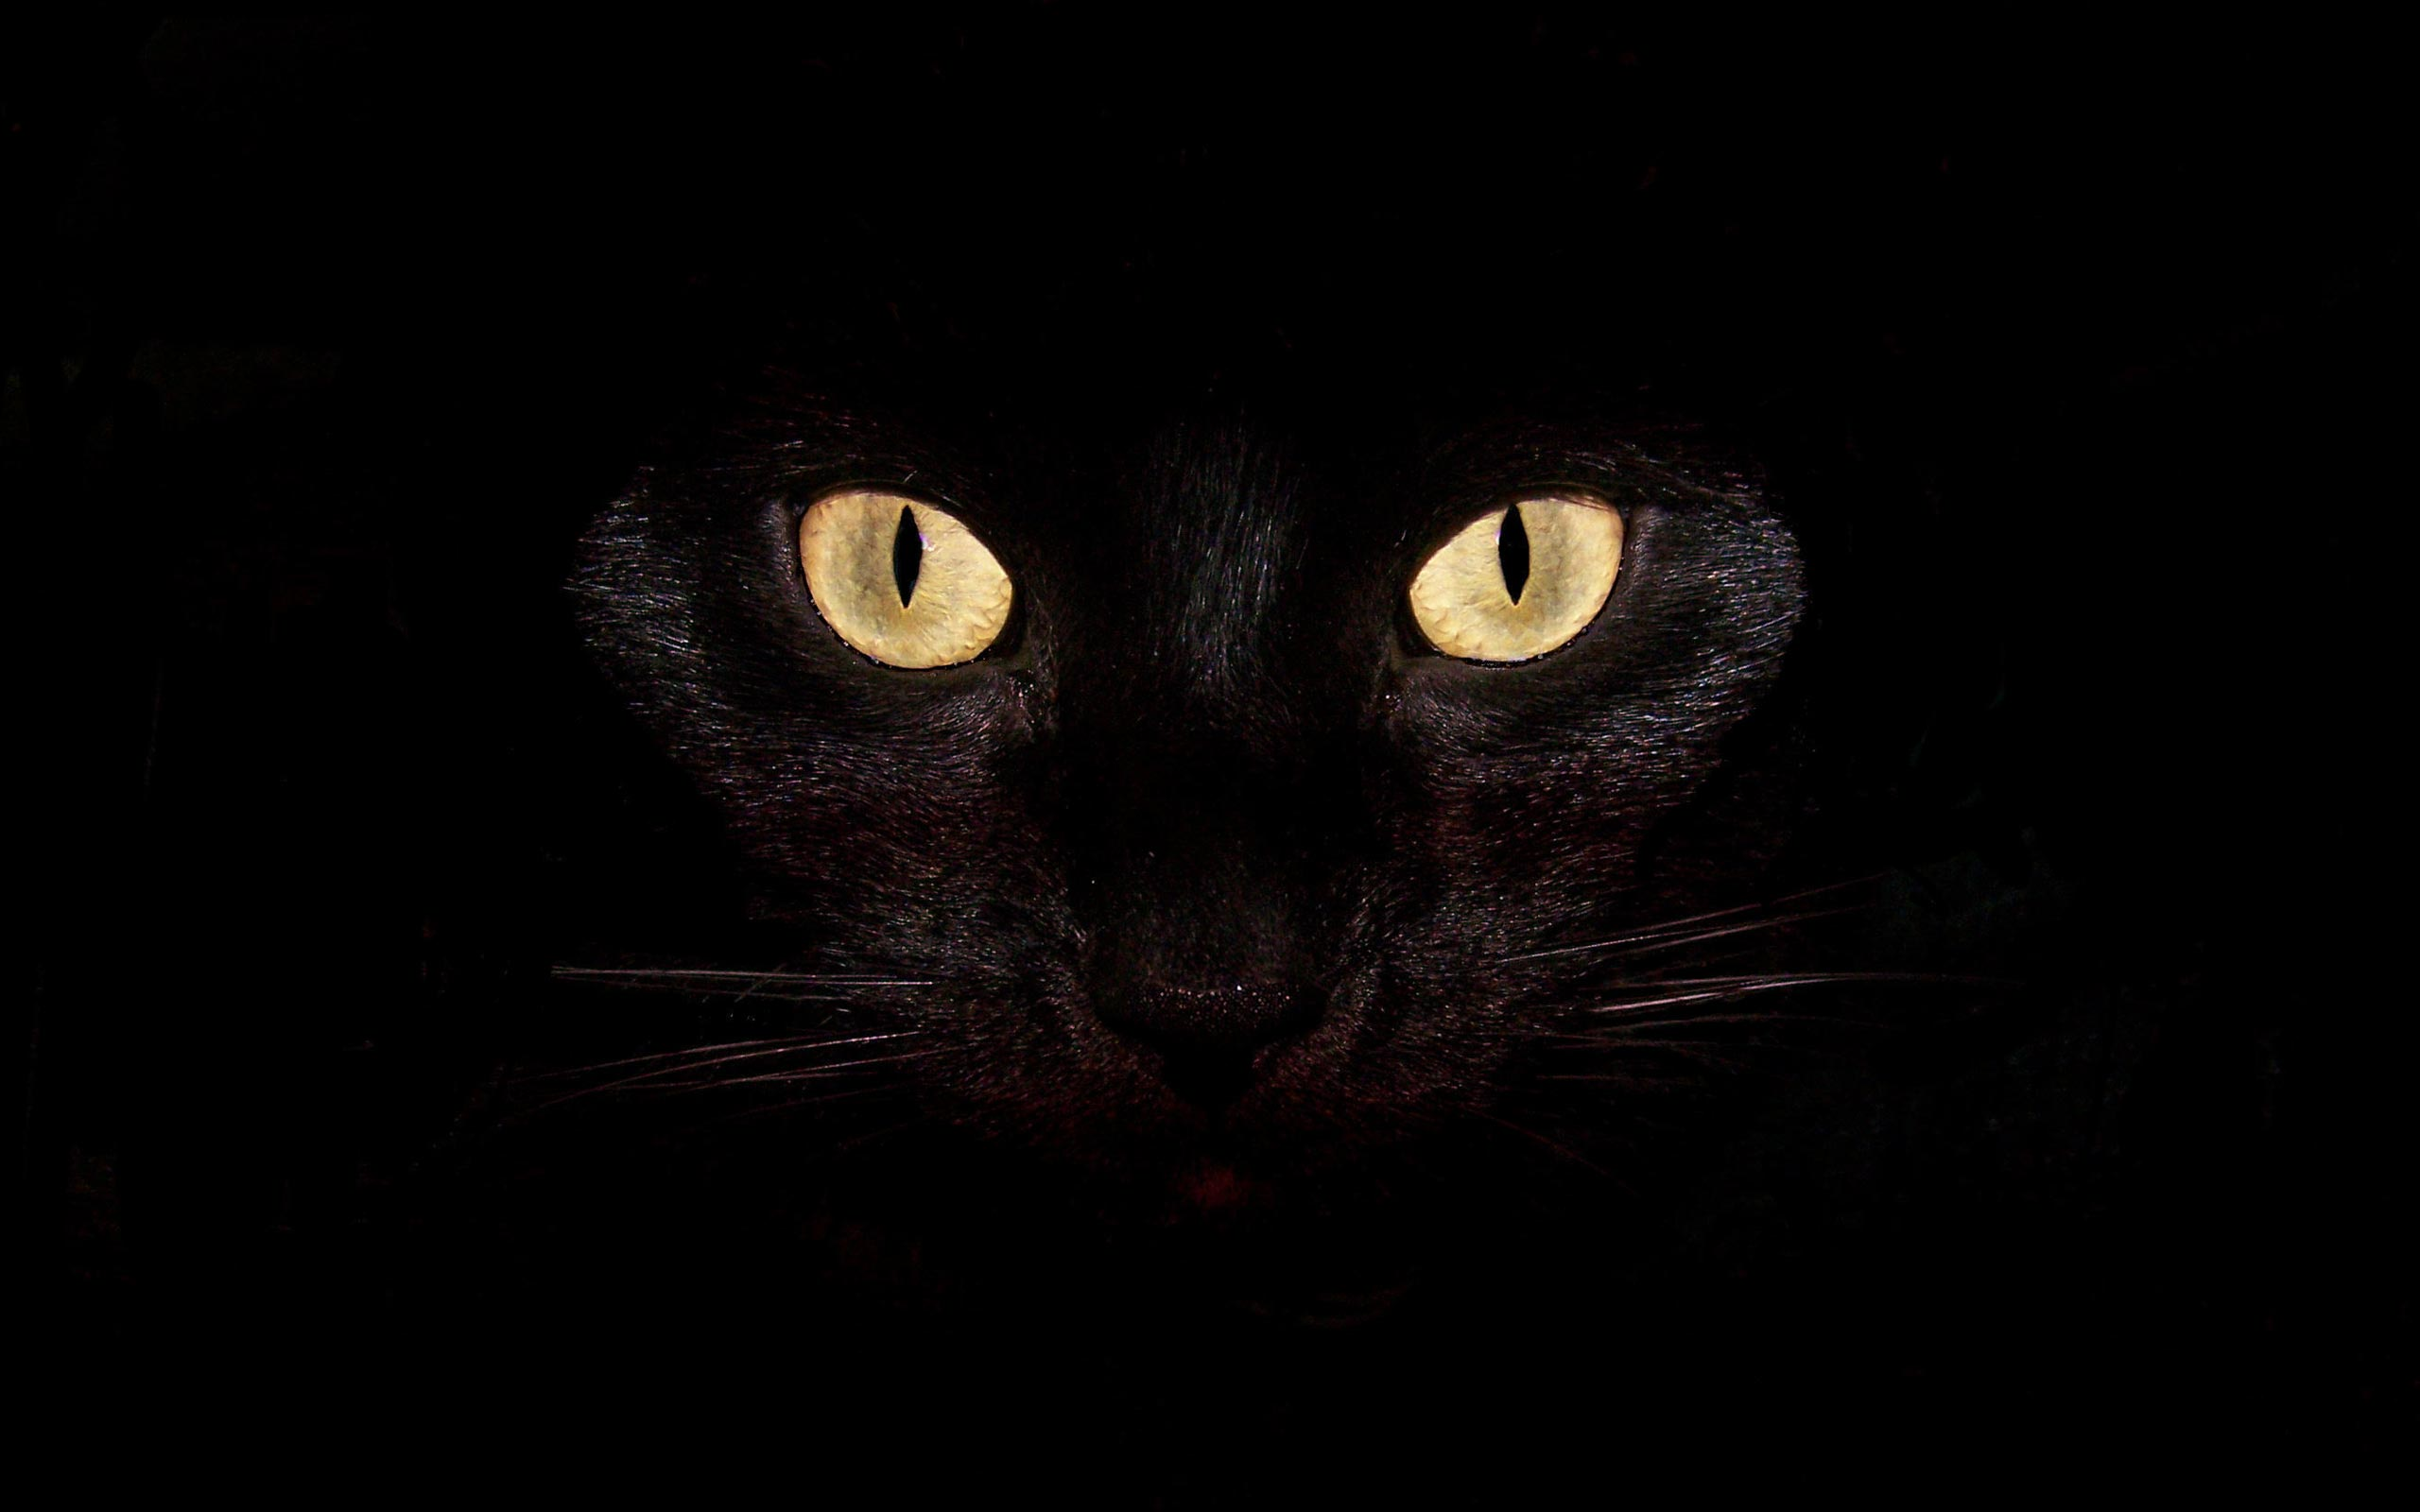 Download Abstract Black cat backgrounds Wallpaper in high resolution 2560x1600